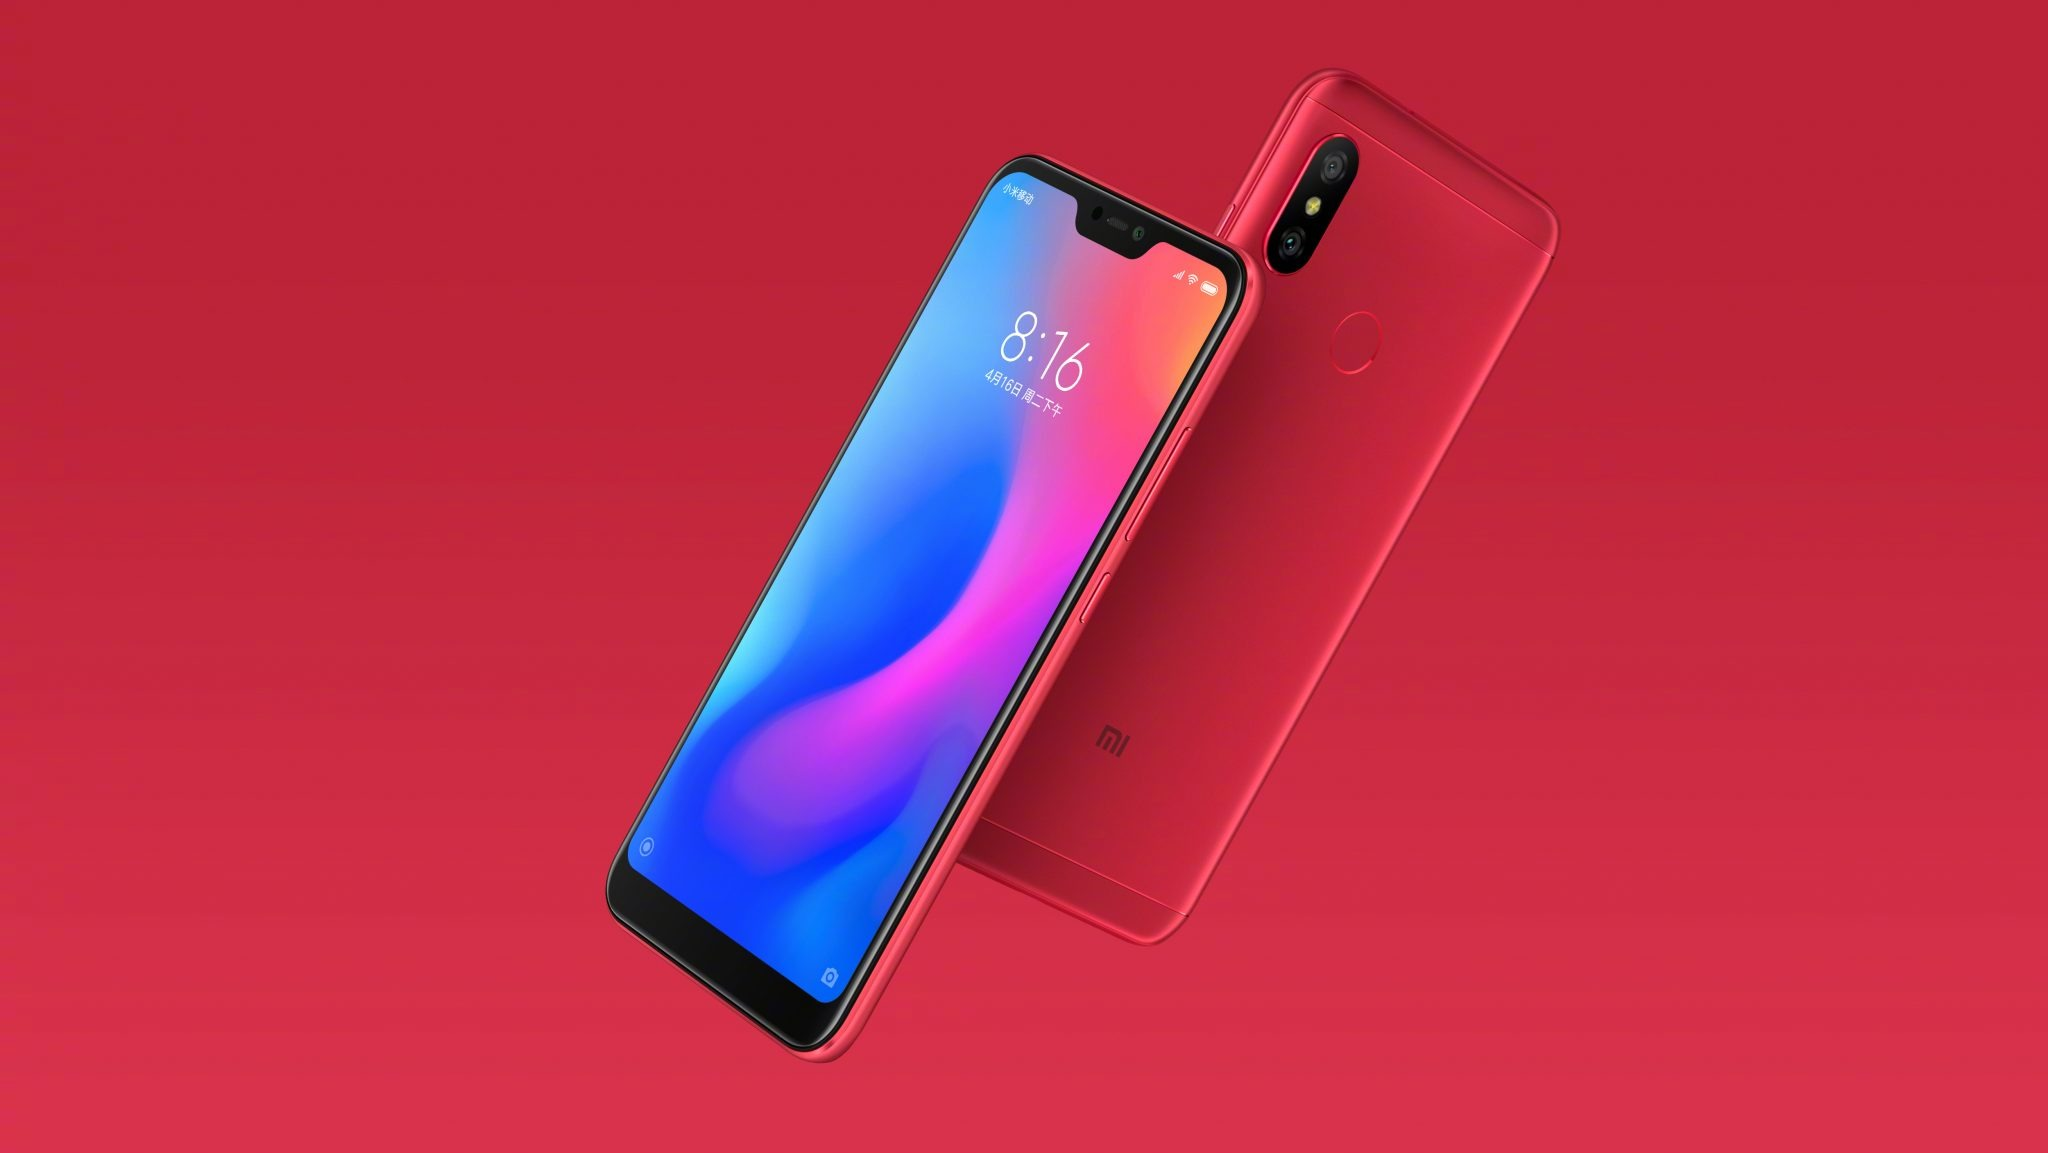 This is the Xiaomi Redmi 6 Pro with a Notch & dual cameras 1